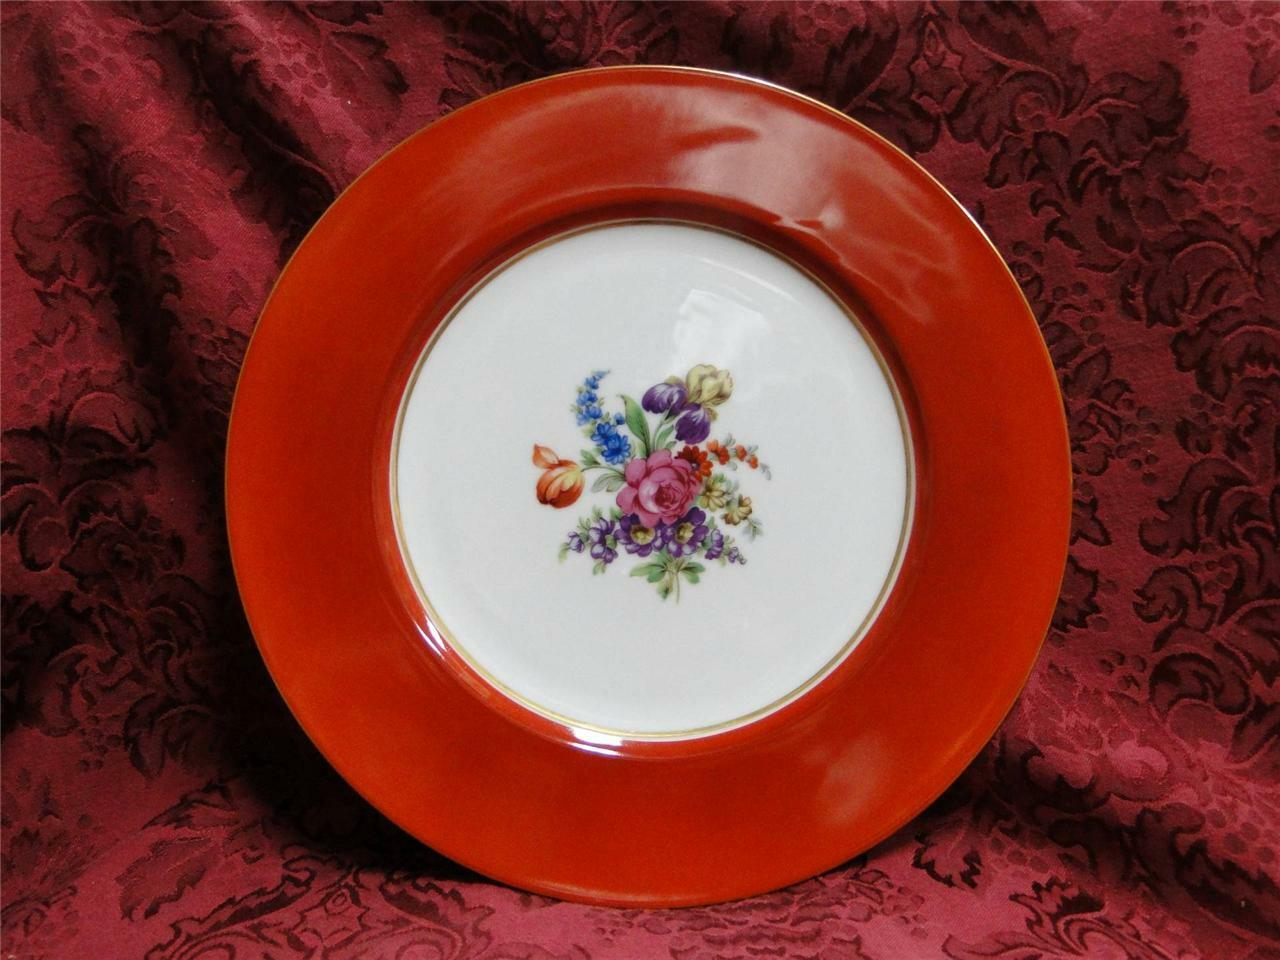 Noritake N1138 Rust Rim, Floral Center on White: Dinner Plate (s), 11""